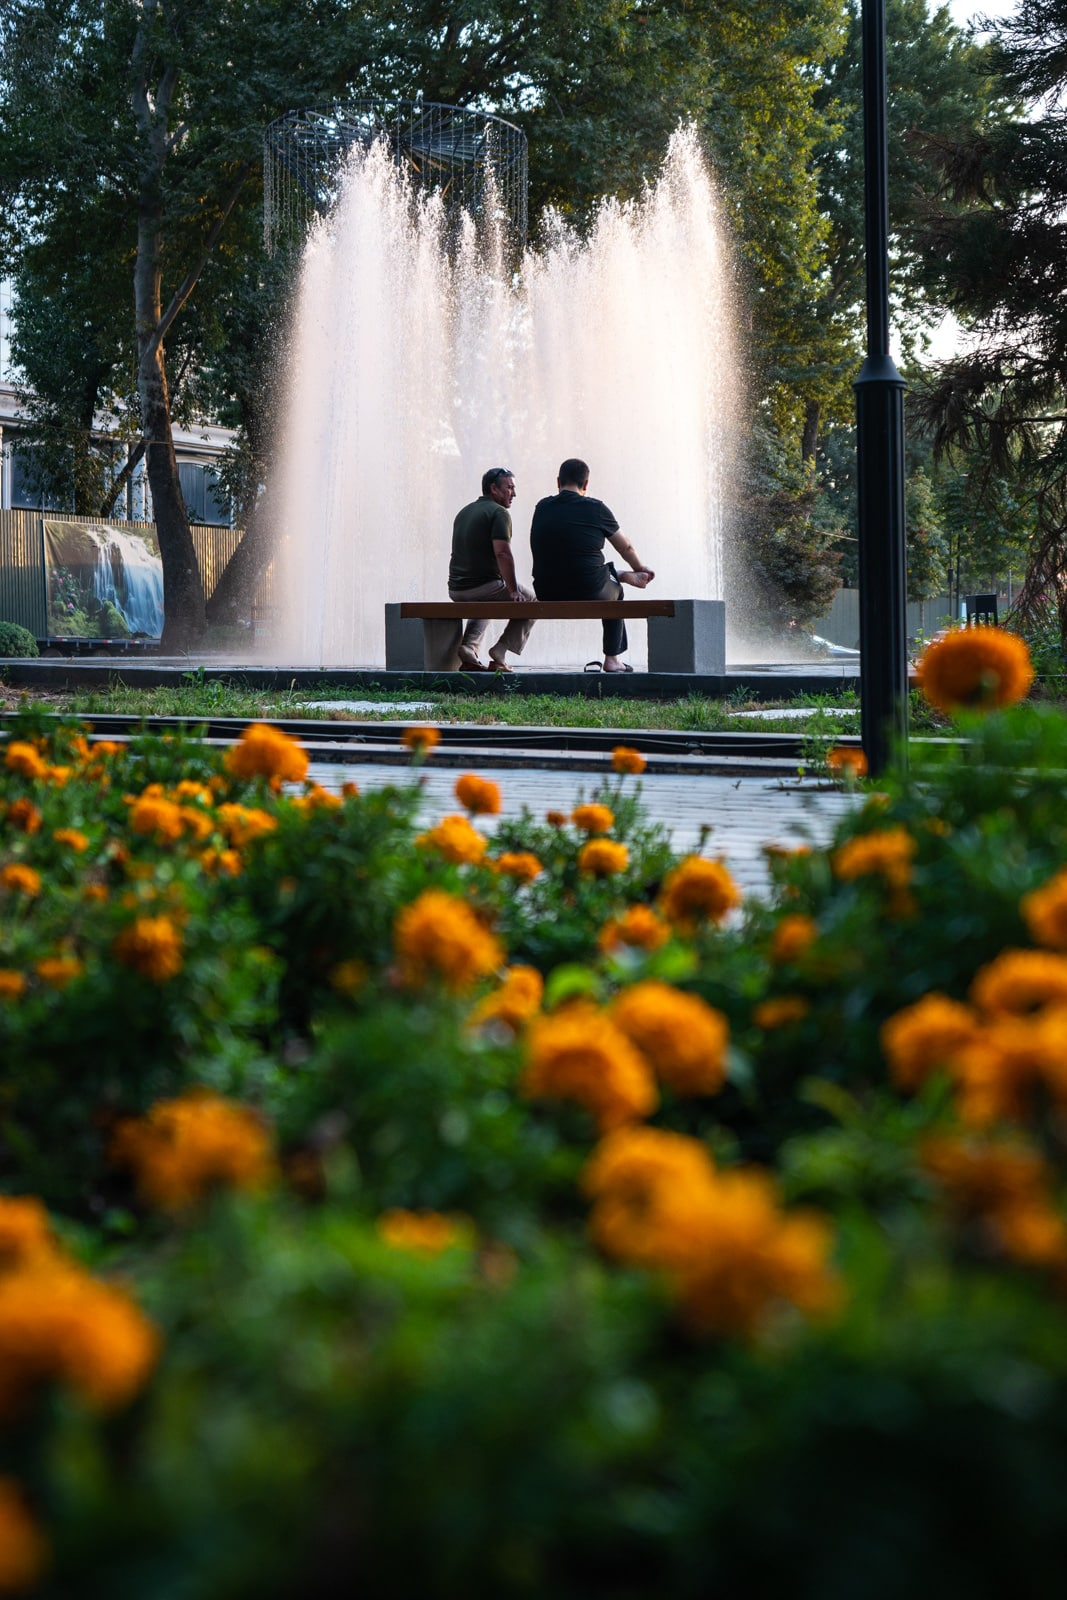 Men sitting by fountain in a park in Dushanbe, Tajikistan